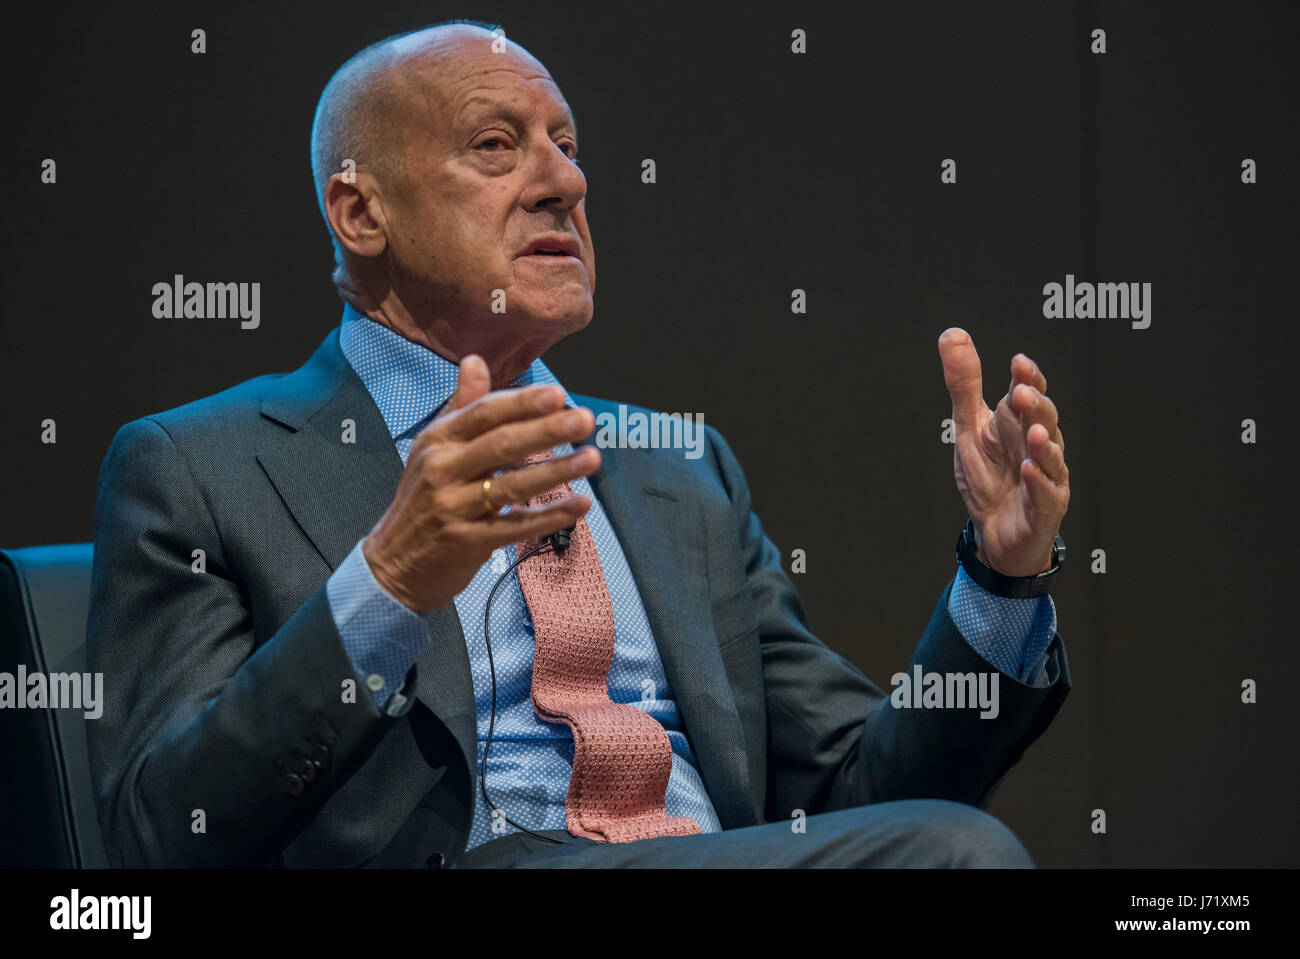 London, UK. 23rd May, 2017. Lord Norman Foster, one of the curators - The Cartier in Motion exhibition at the design - Stock Image